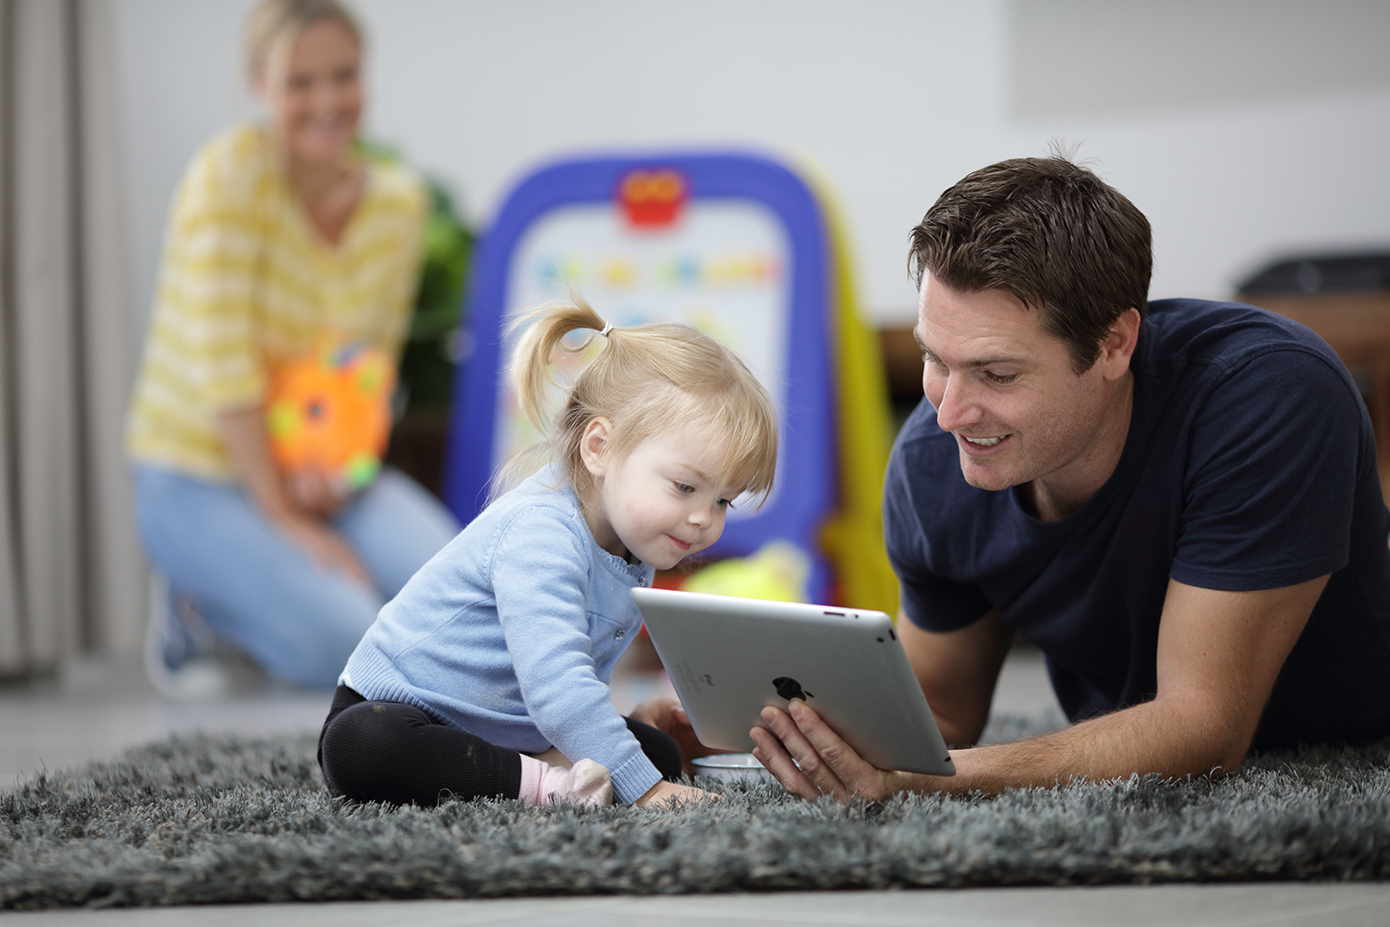 Man and young child in residential home looking at iPad